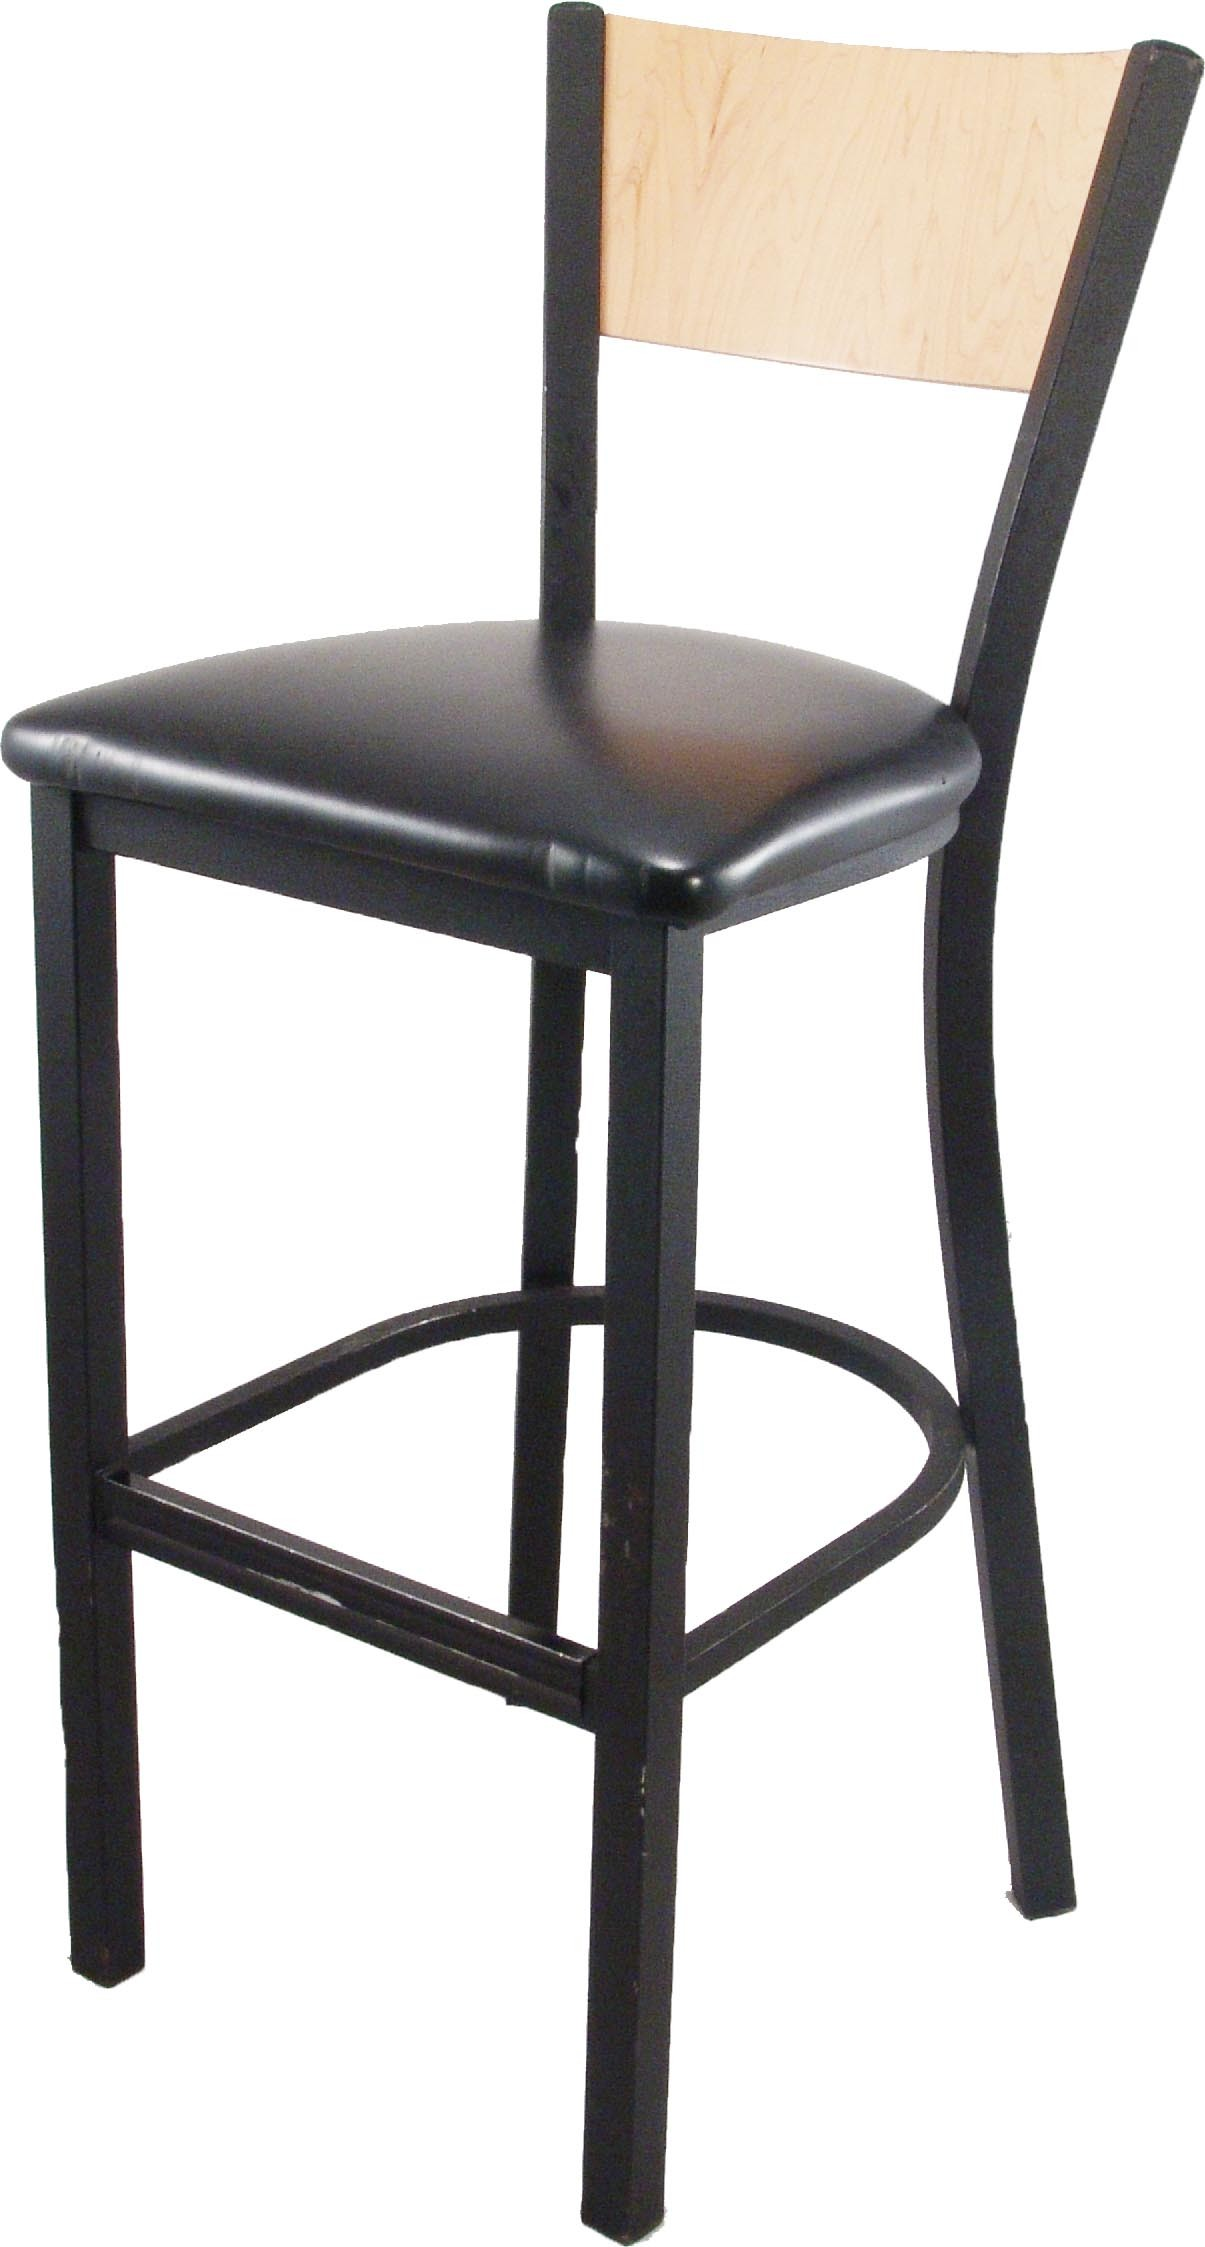 Black Stool with Light Oak Back - C22